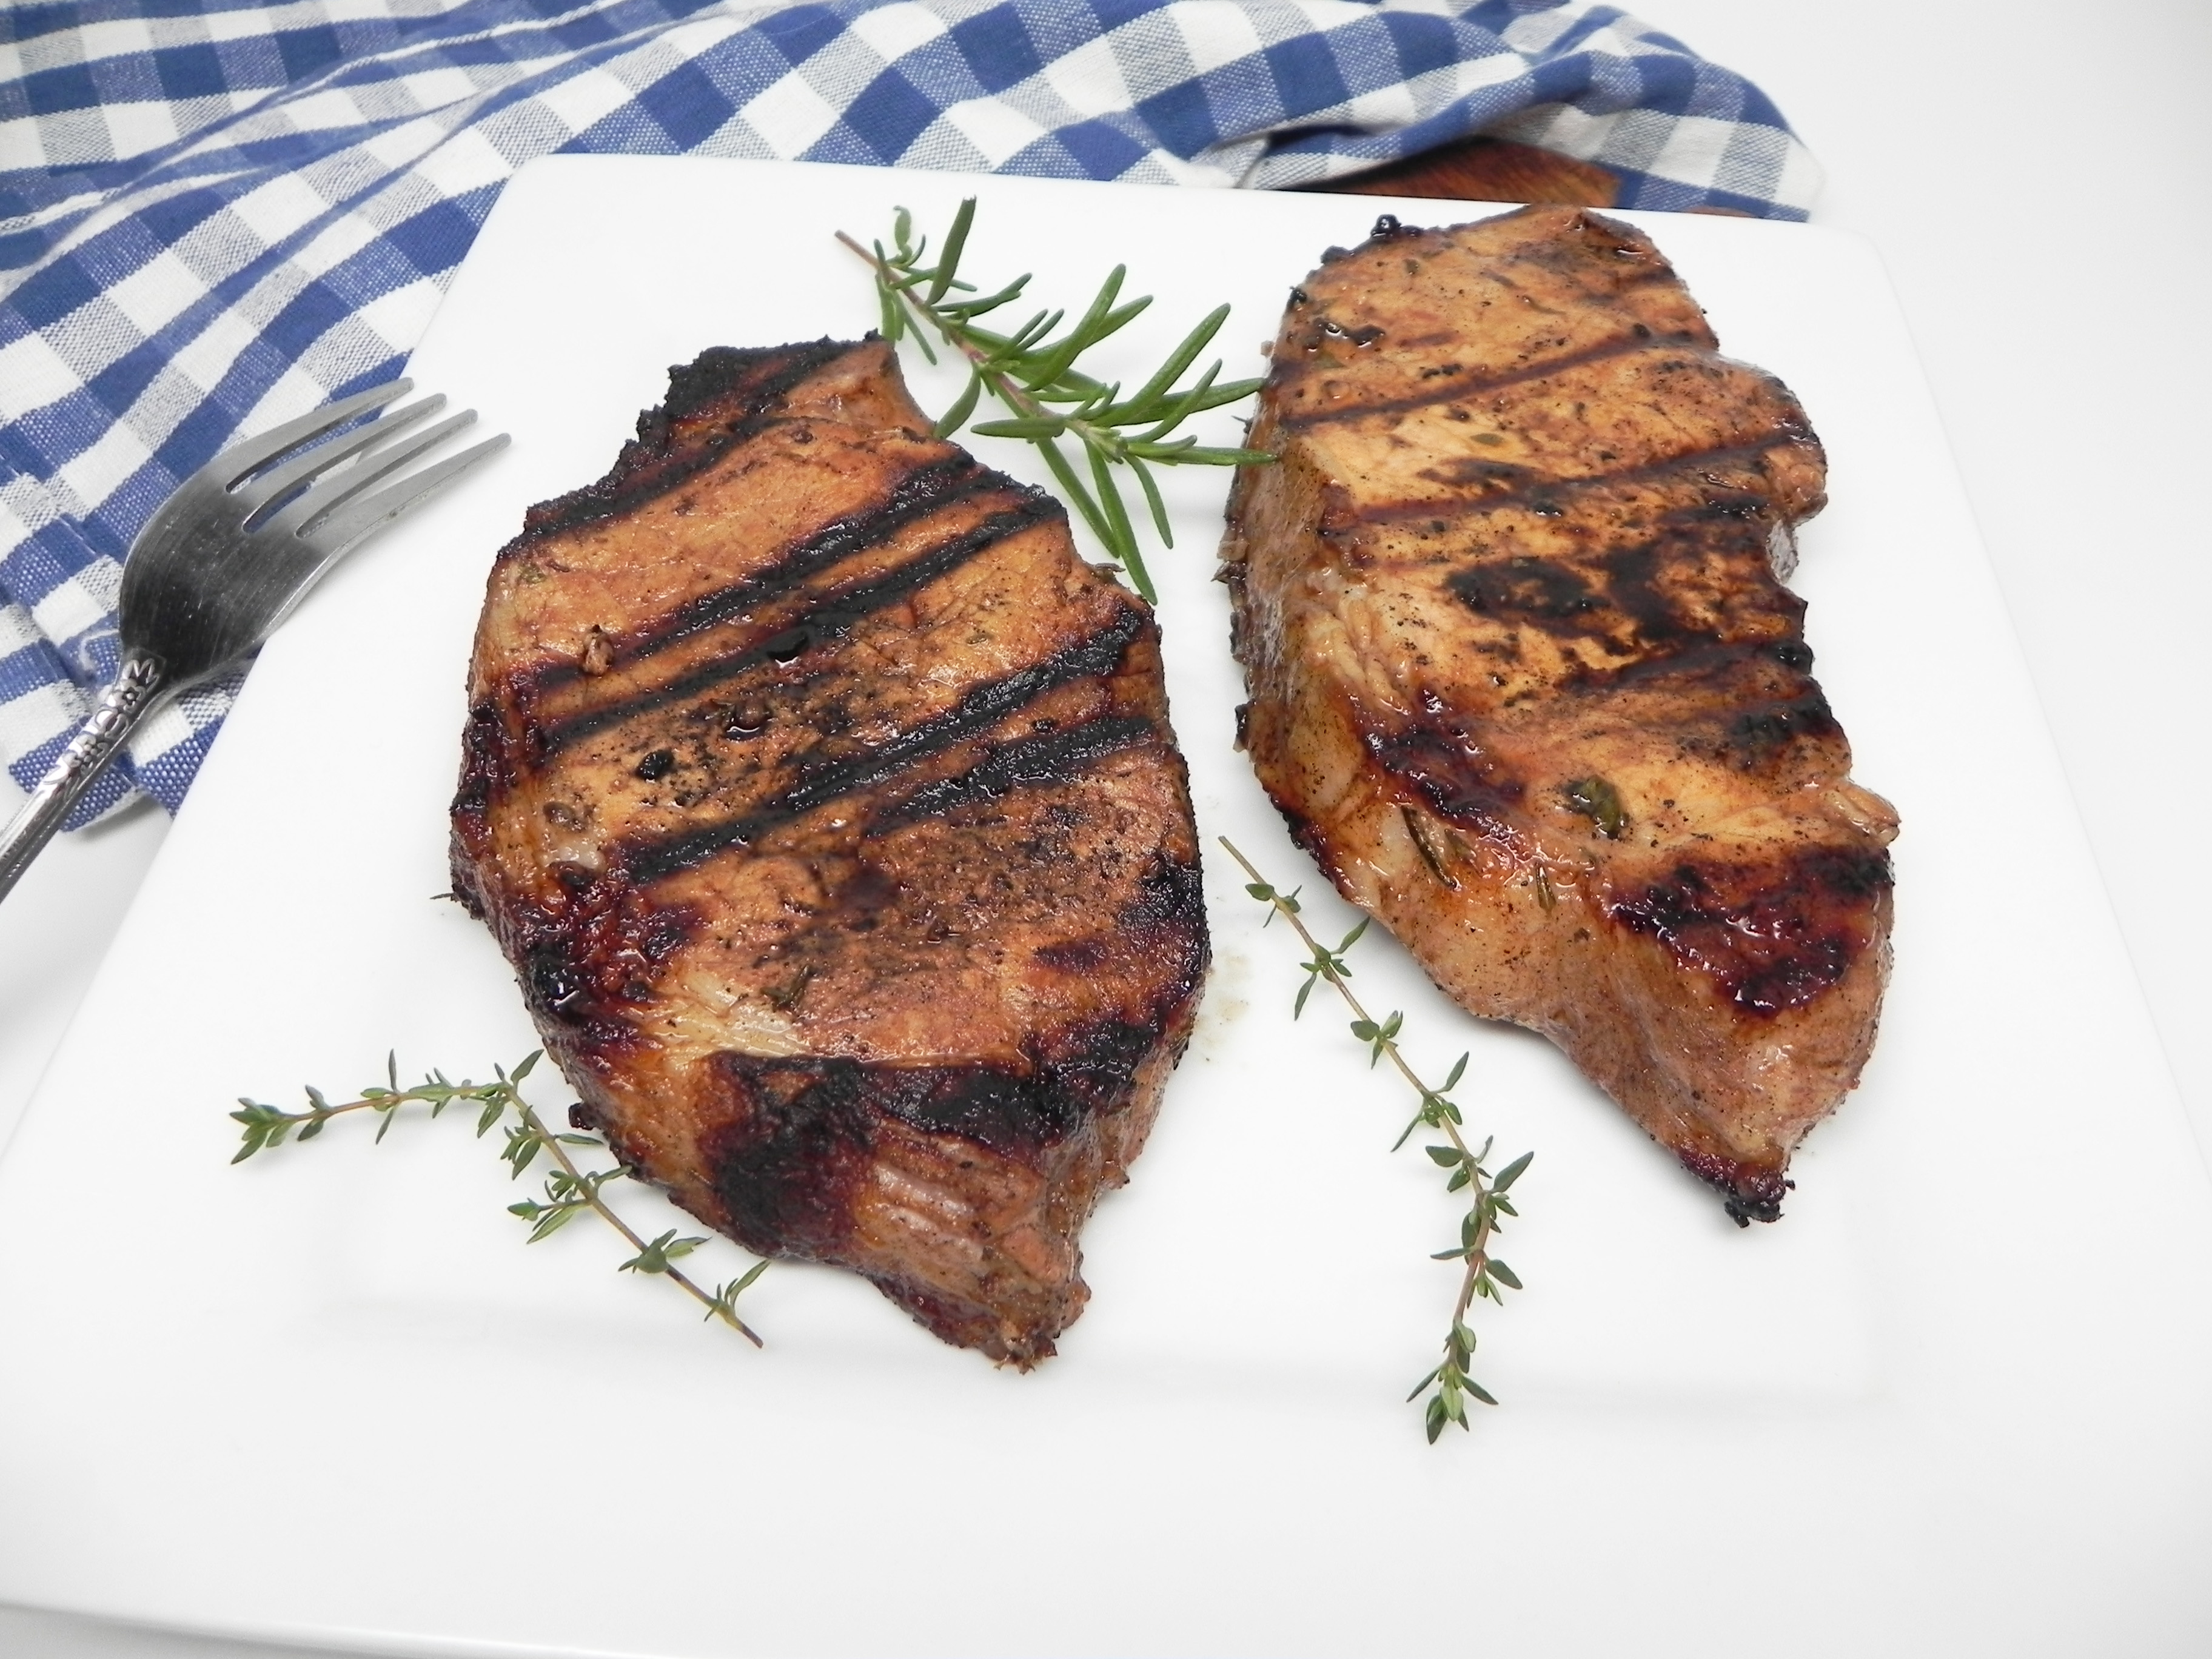 Grilled Pork Chops with Fresh Herbs